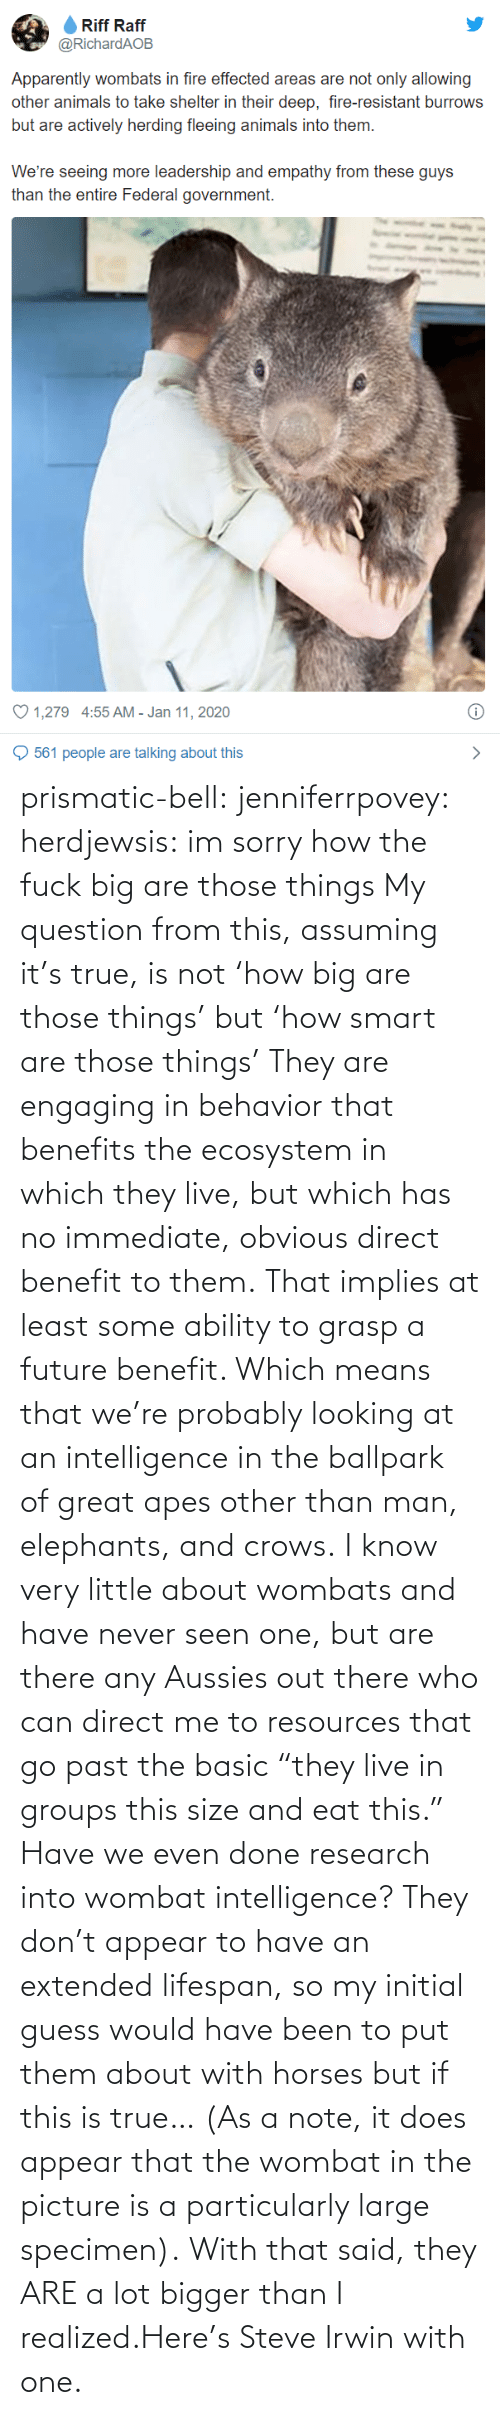 "Height: prismatic-bell:  jenniferrpovey: herdjewsis: im sorry how the fuck big are those things My question from this, assuming it's true, is not 'how big are those things' but 'how smart are those things' They are engaging in behavior that benefits the ecosystem in which they live, but which has no immediate, obvious direct benefit to them. That implies at least some ability to grasp a future benefit. Which means that we're probably looking at an intelligence in the ballpark of great apes other than man, elephants, and crows. I know very little about wombats and have never seen one, but are there any Aussies out there who can direct me to resources that go past the basic ""they live in groups this size and eat this."" Have we even done research into wombat intelligence? They don't appear to have an extended lifespan, so my initial guess would have been to put them about with horses but if this is true… (As a note, it does appear that the wombat in the picture is a particularly large specimen).  With that said, they ARE a lot bigger than I realized.Here's Steve Irwin with one."